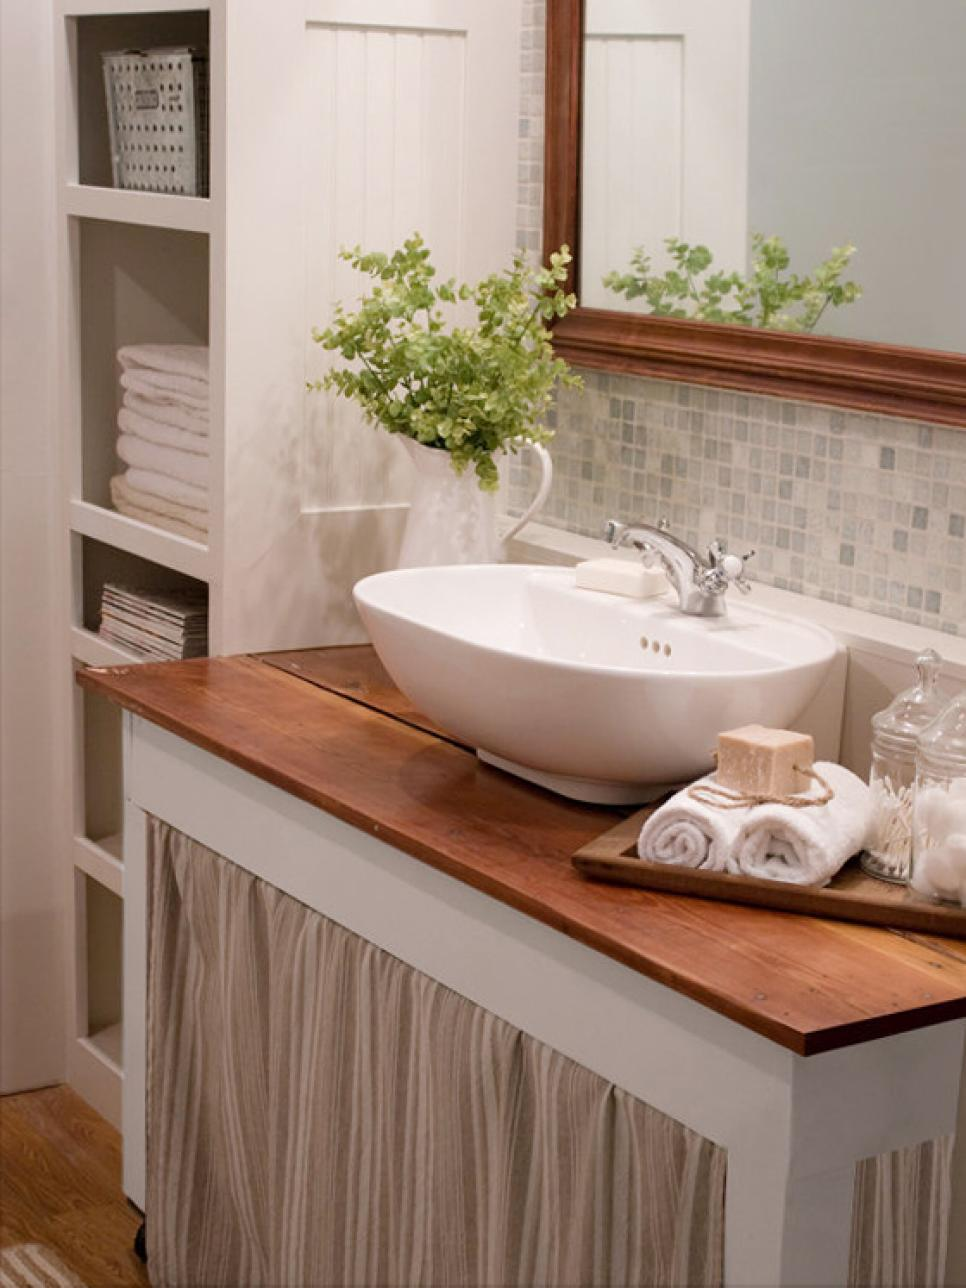 Small Bathroom Design Ideas HGTV - How to remodel a bathroom for small bathroom ideas